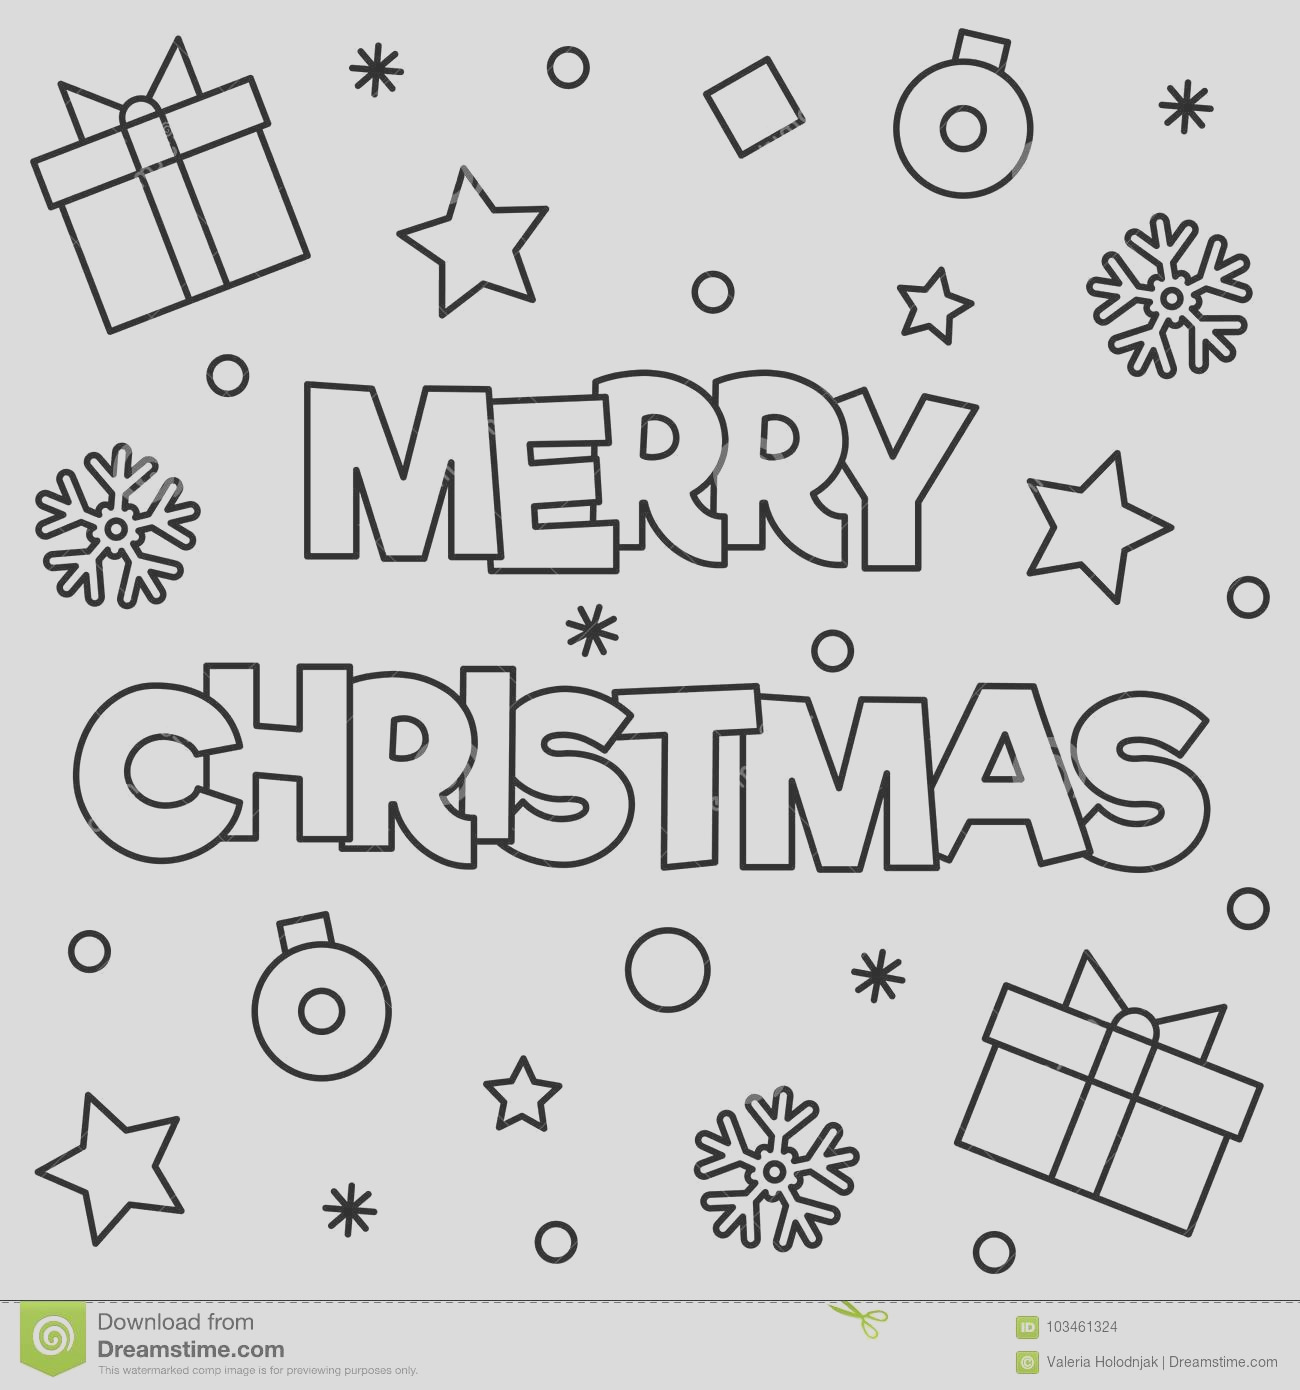 merry christmas coloring page black white vector illustration image